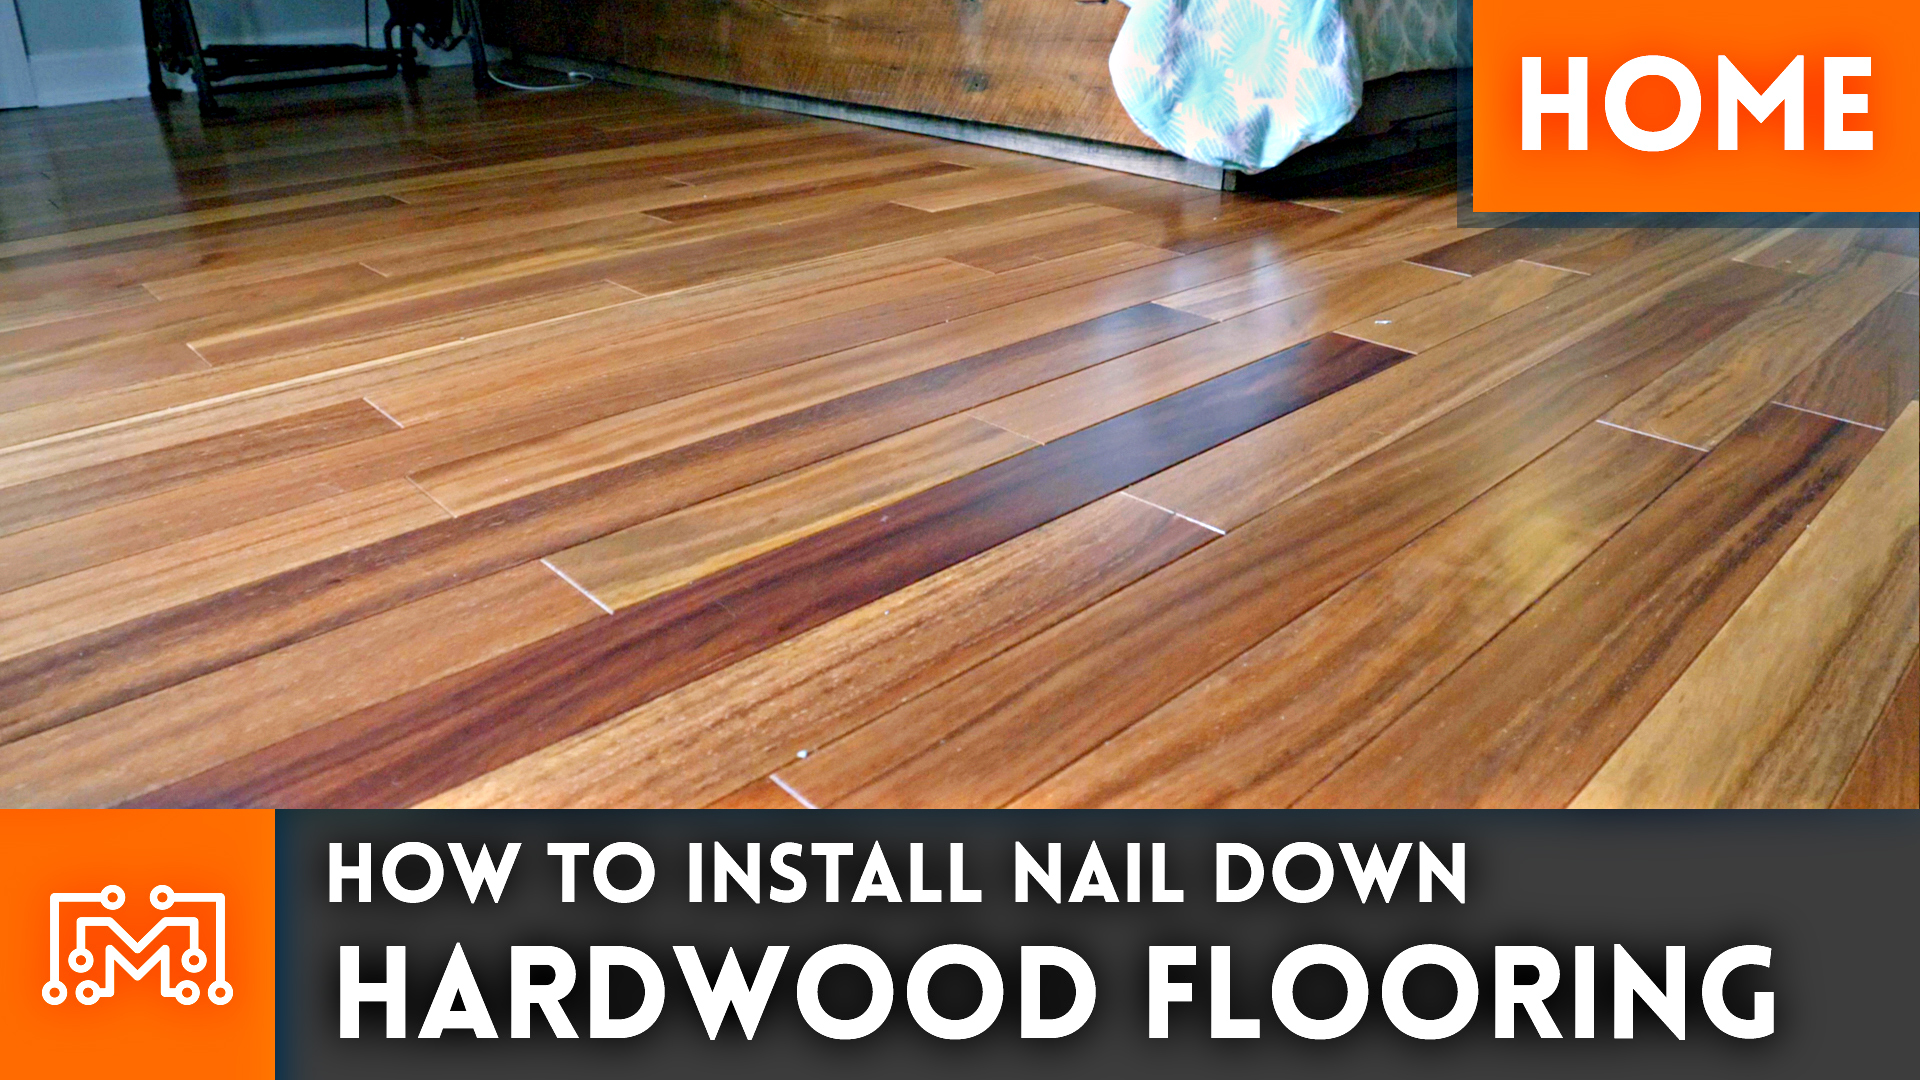 how to install nail down hardwood flooring // home renovation - i